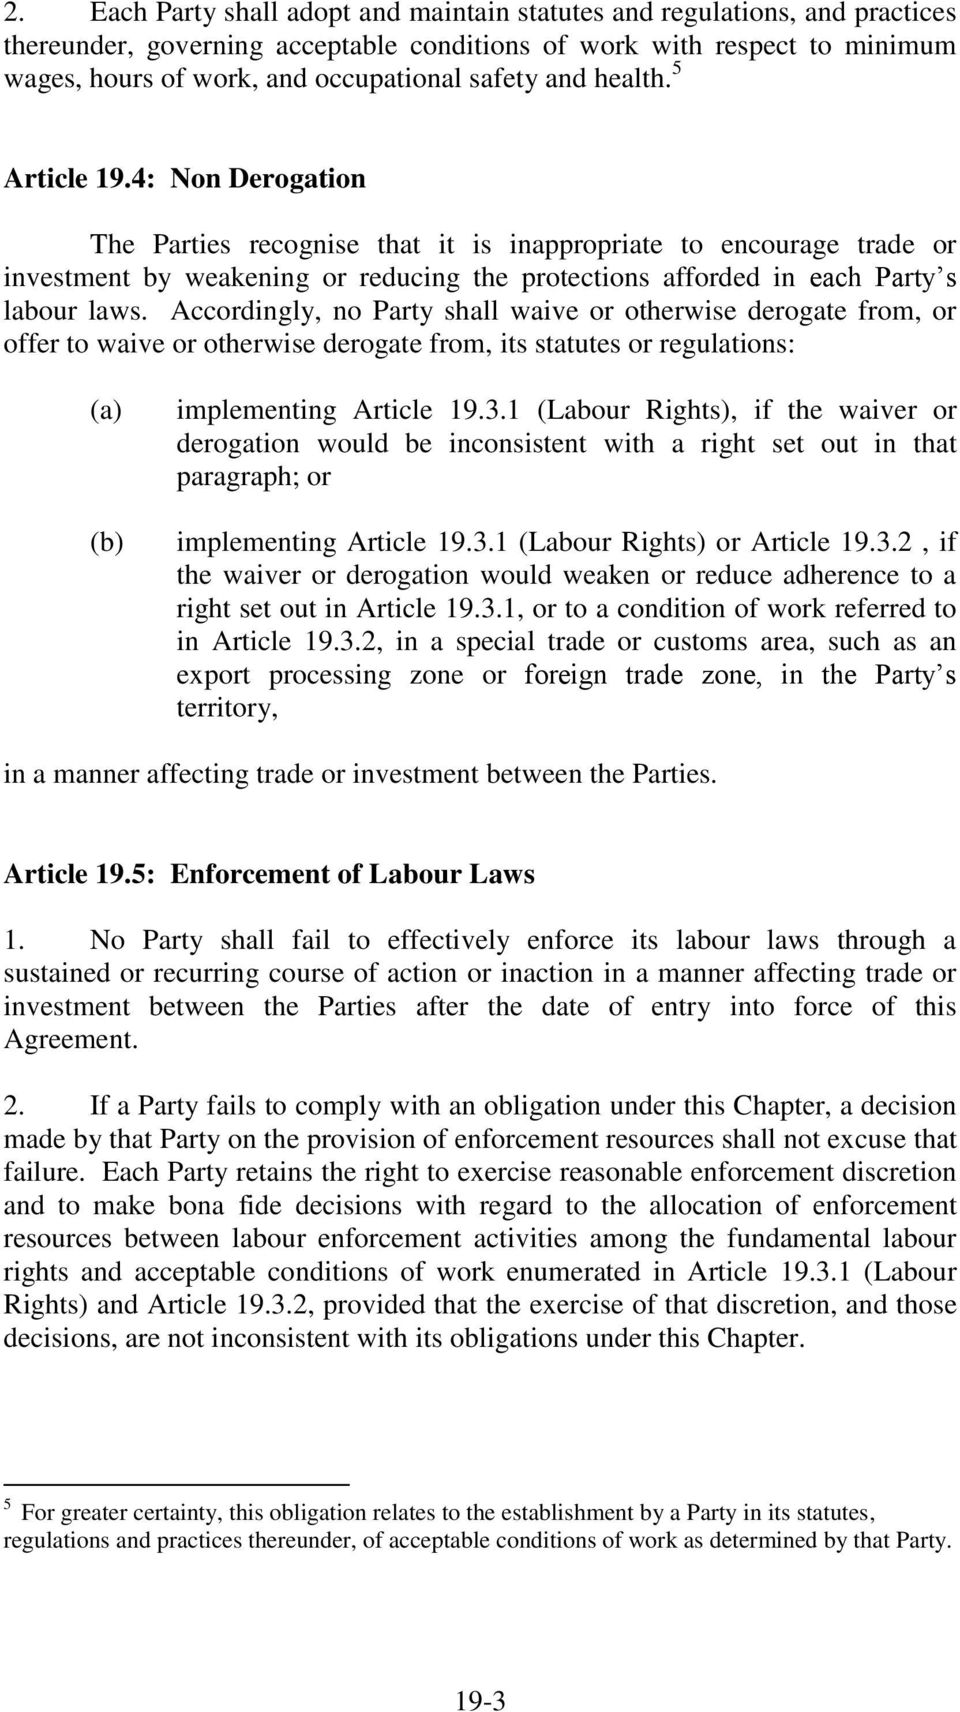 4: Non Derogation The Parties recognise that it is inappropriate to encourage trade or investment by weakening or reducing the protections afforded in each Party s labour laws.